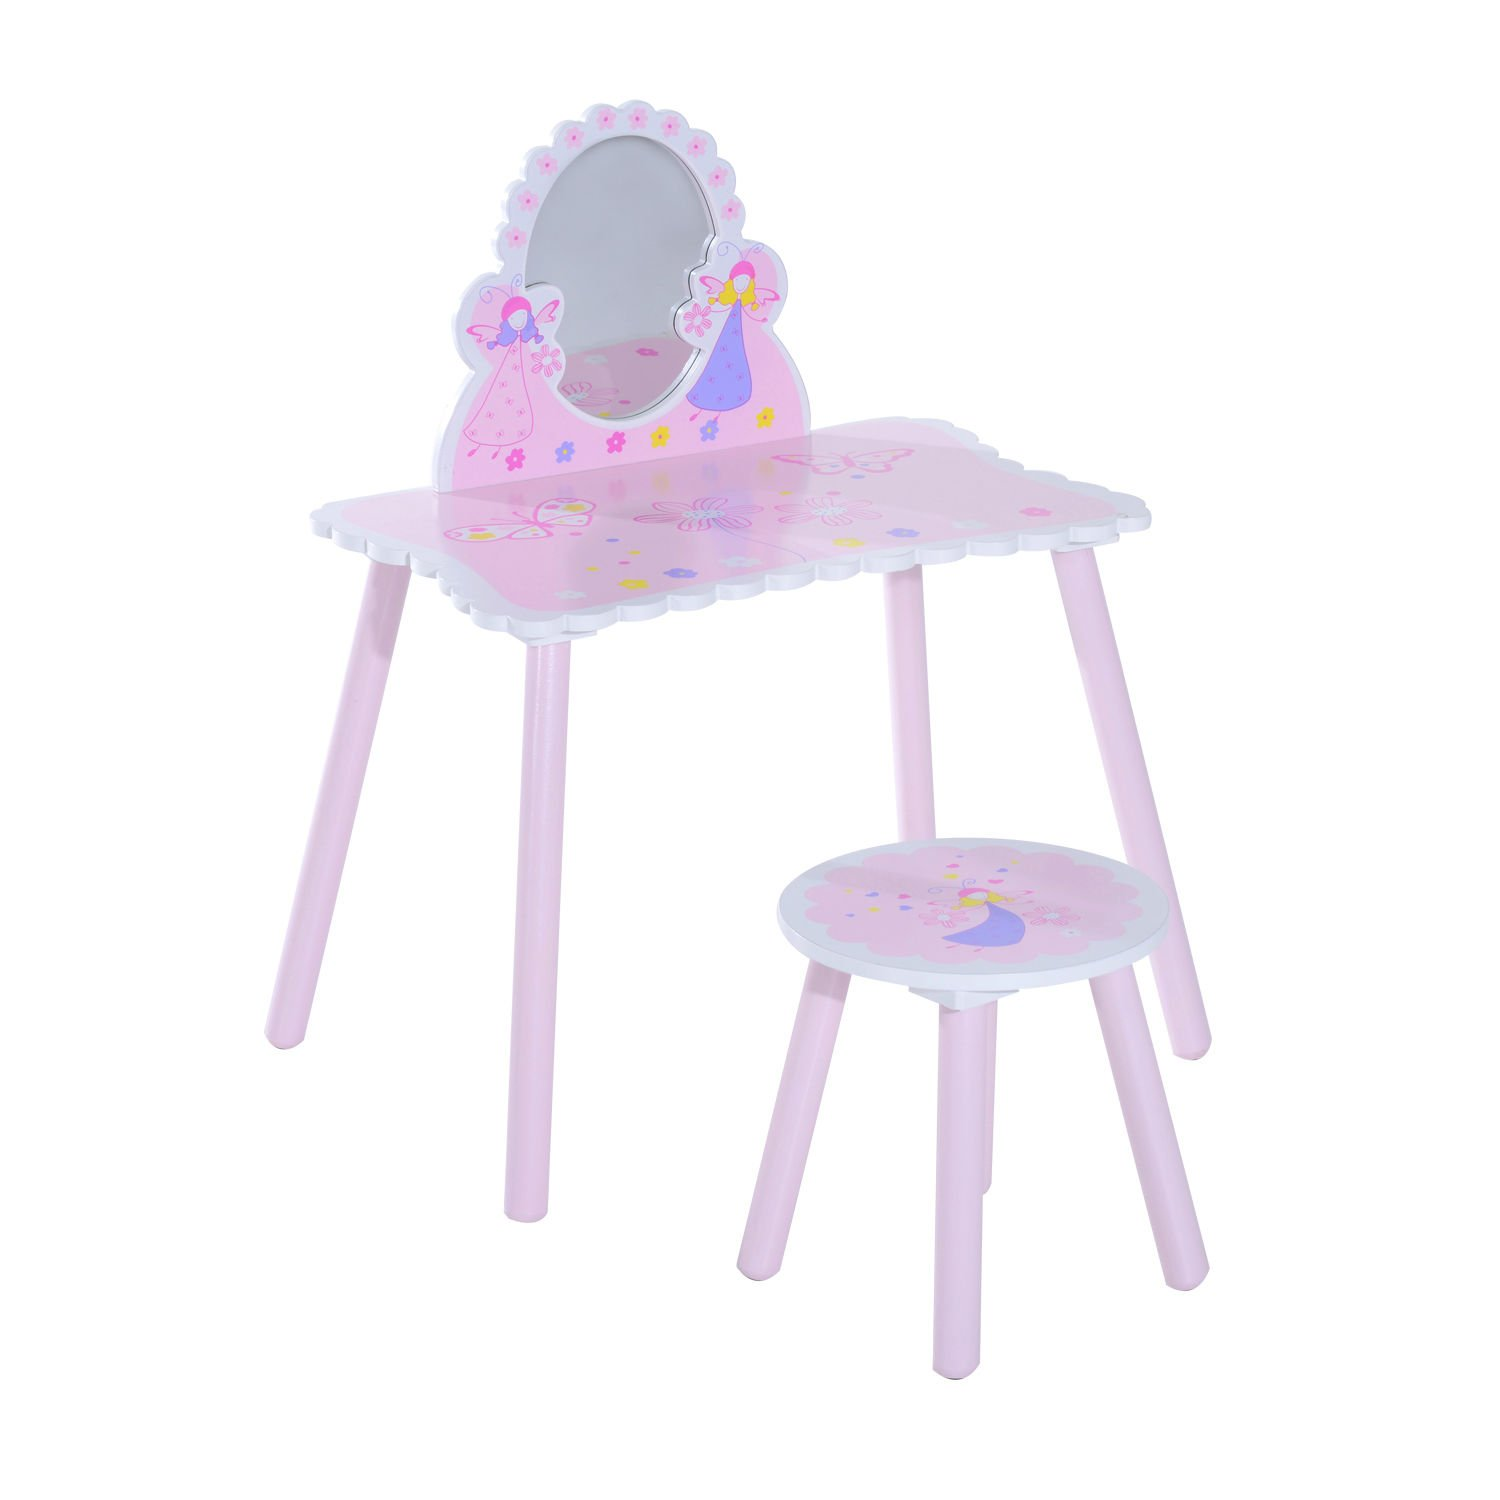 HOMCOM Girls Pink Wooden Kids Dressing Table & Stool Make Up Desk Chair Toys Fairy Dresser Play Set w/Mirror Sold by MHSTAR